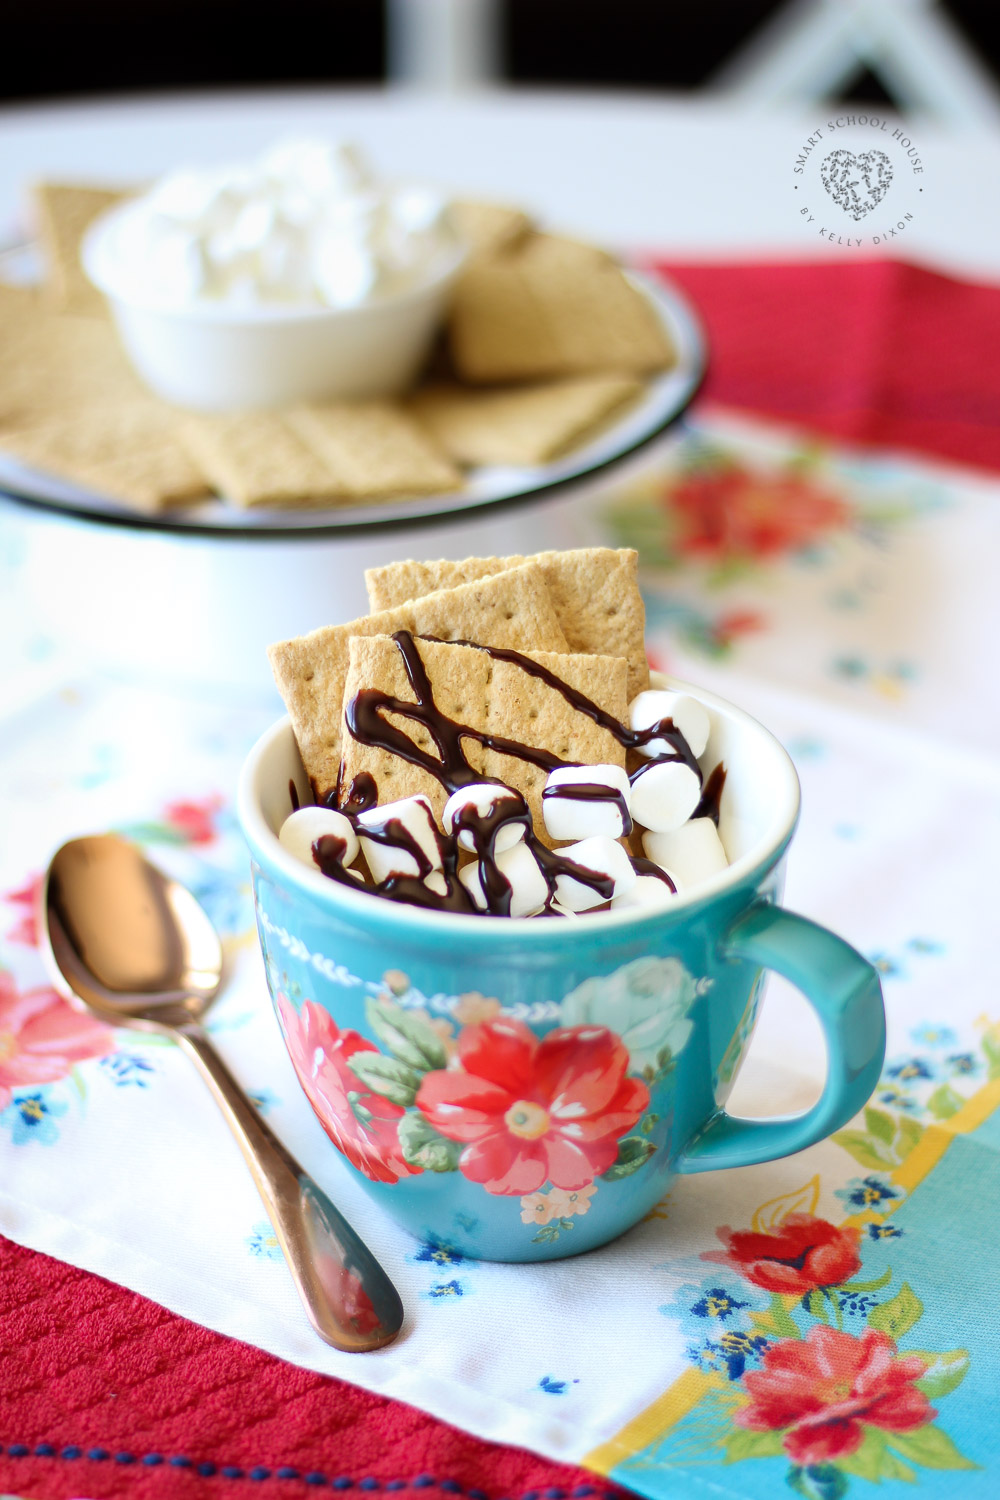 S'mores mug cake! Triple chocolate cake topped with graham crackers, marshmallows and chocolate. Takes less than 1 minute to make!